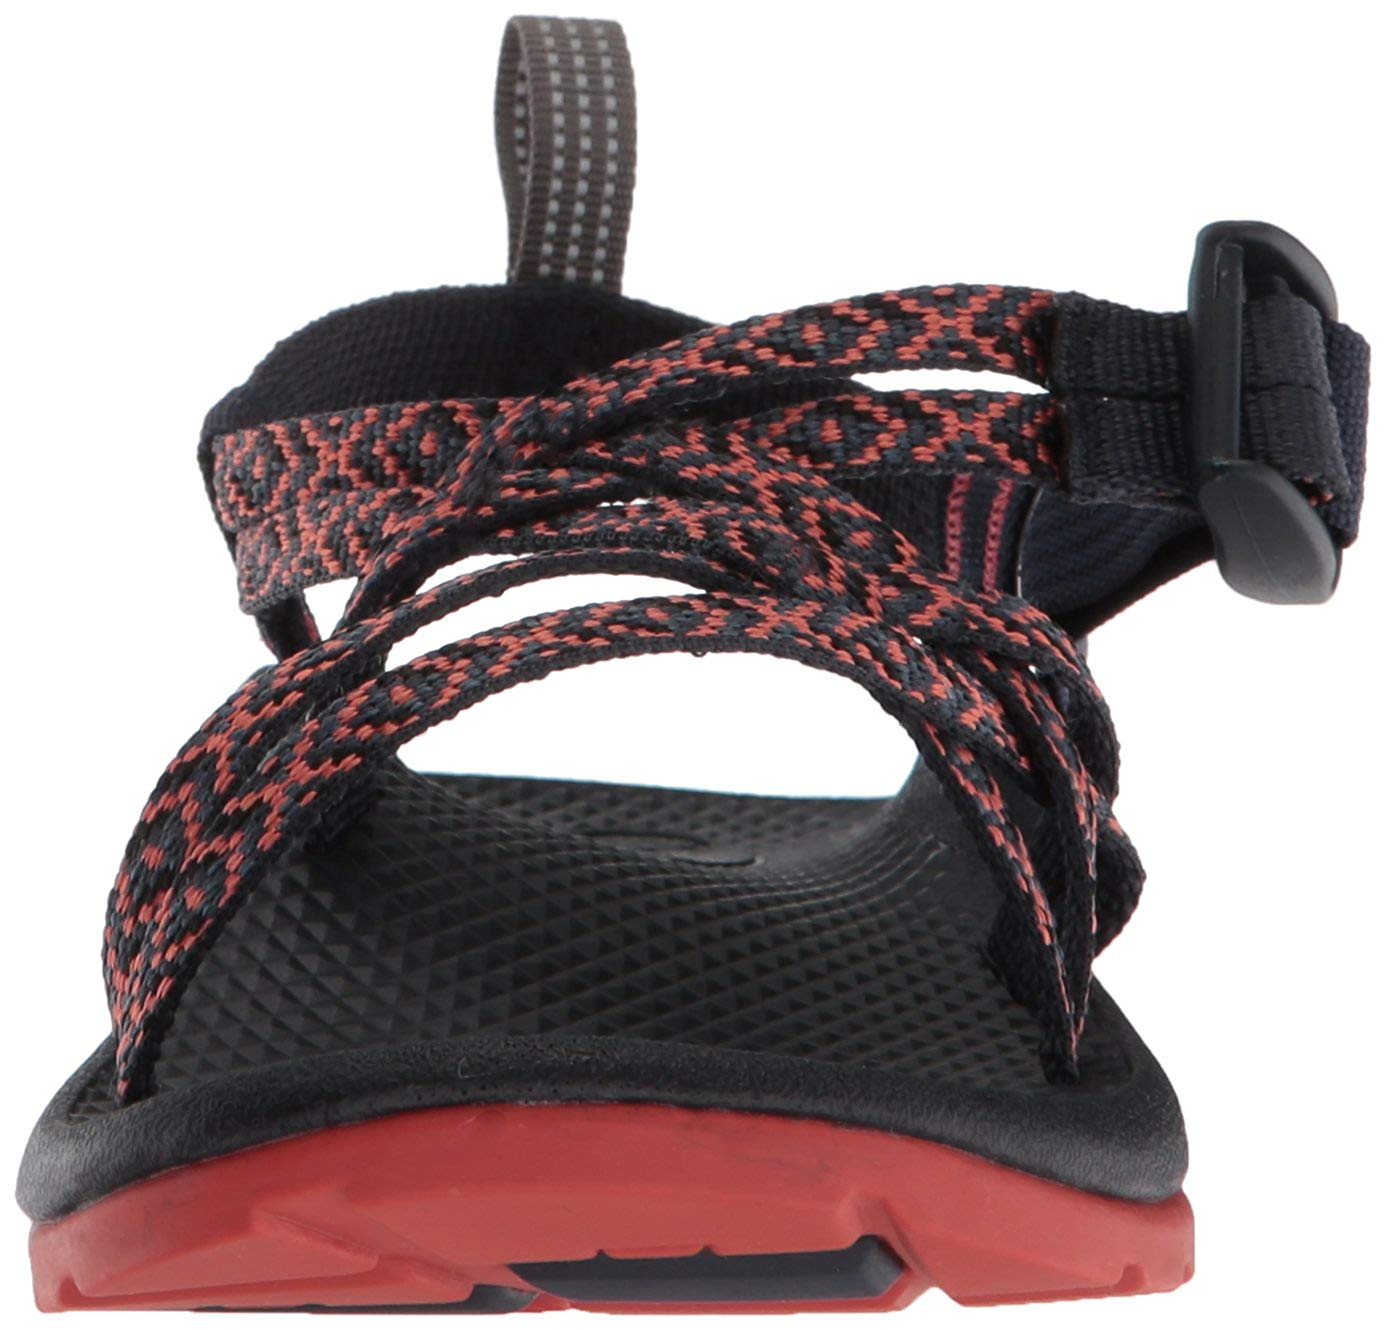 85c7e0a46 Chaco ZX1 Ecotread Sandal (Toddler Little